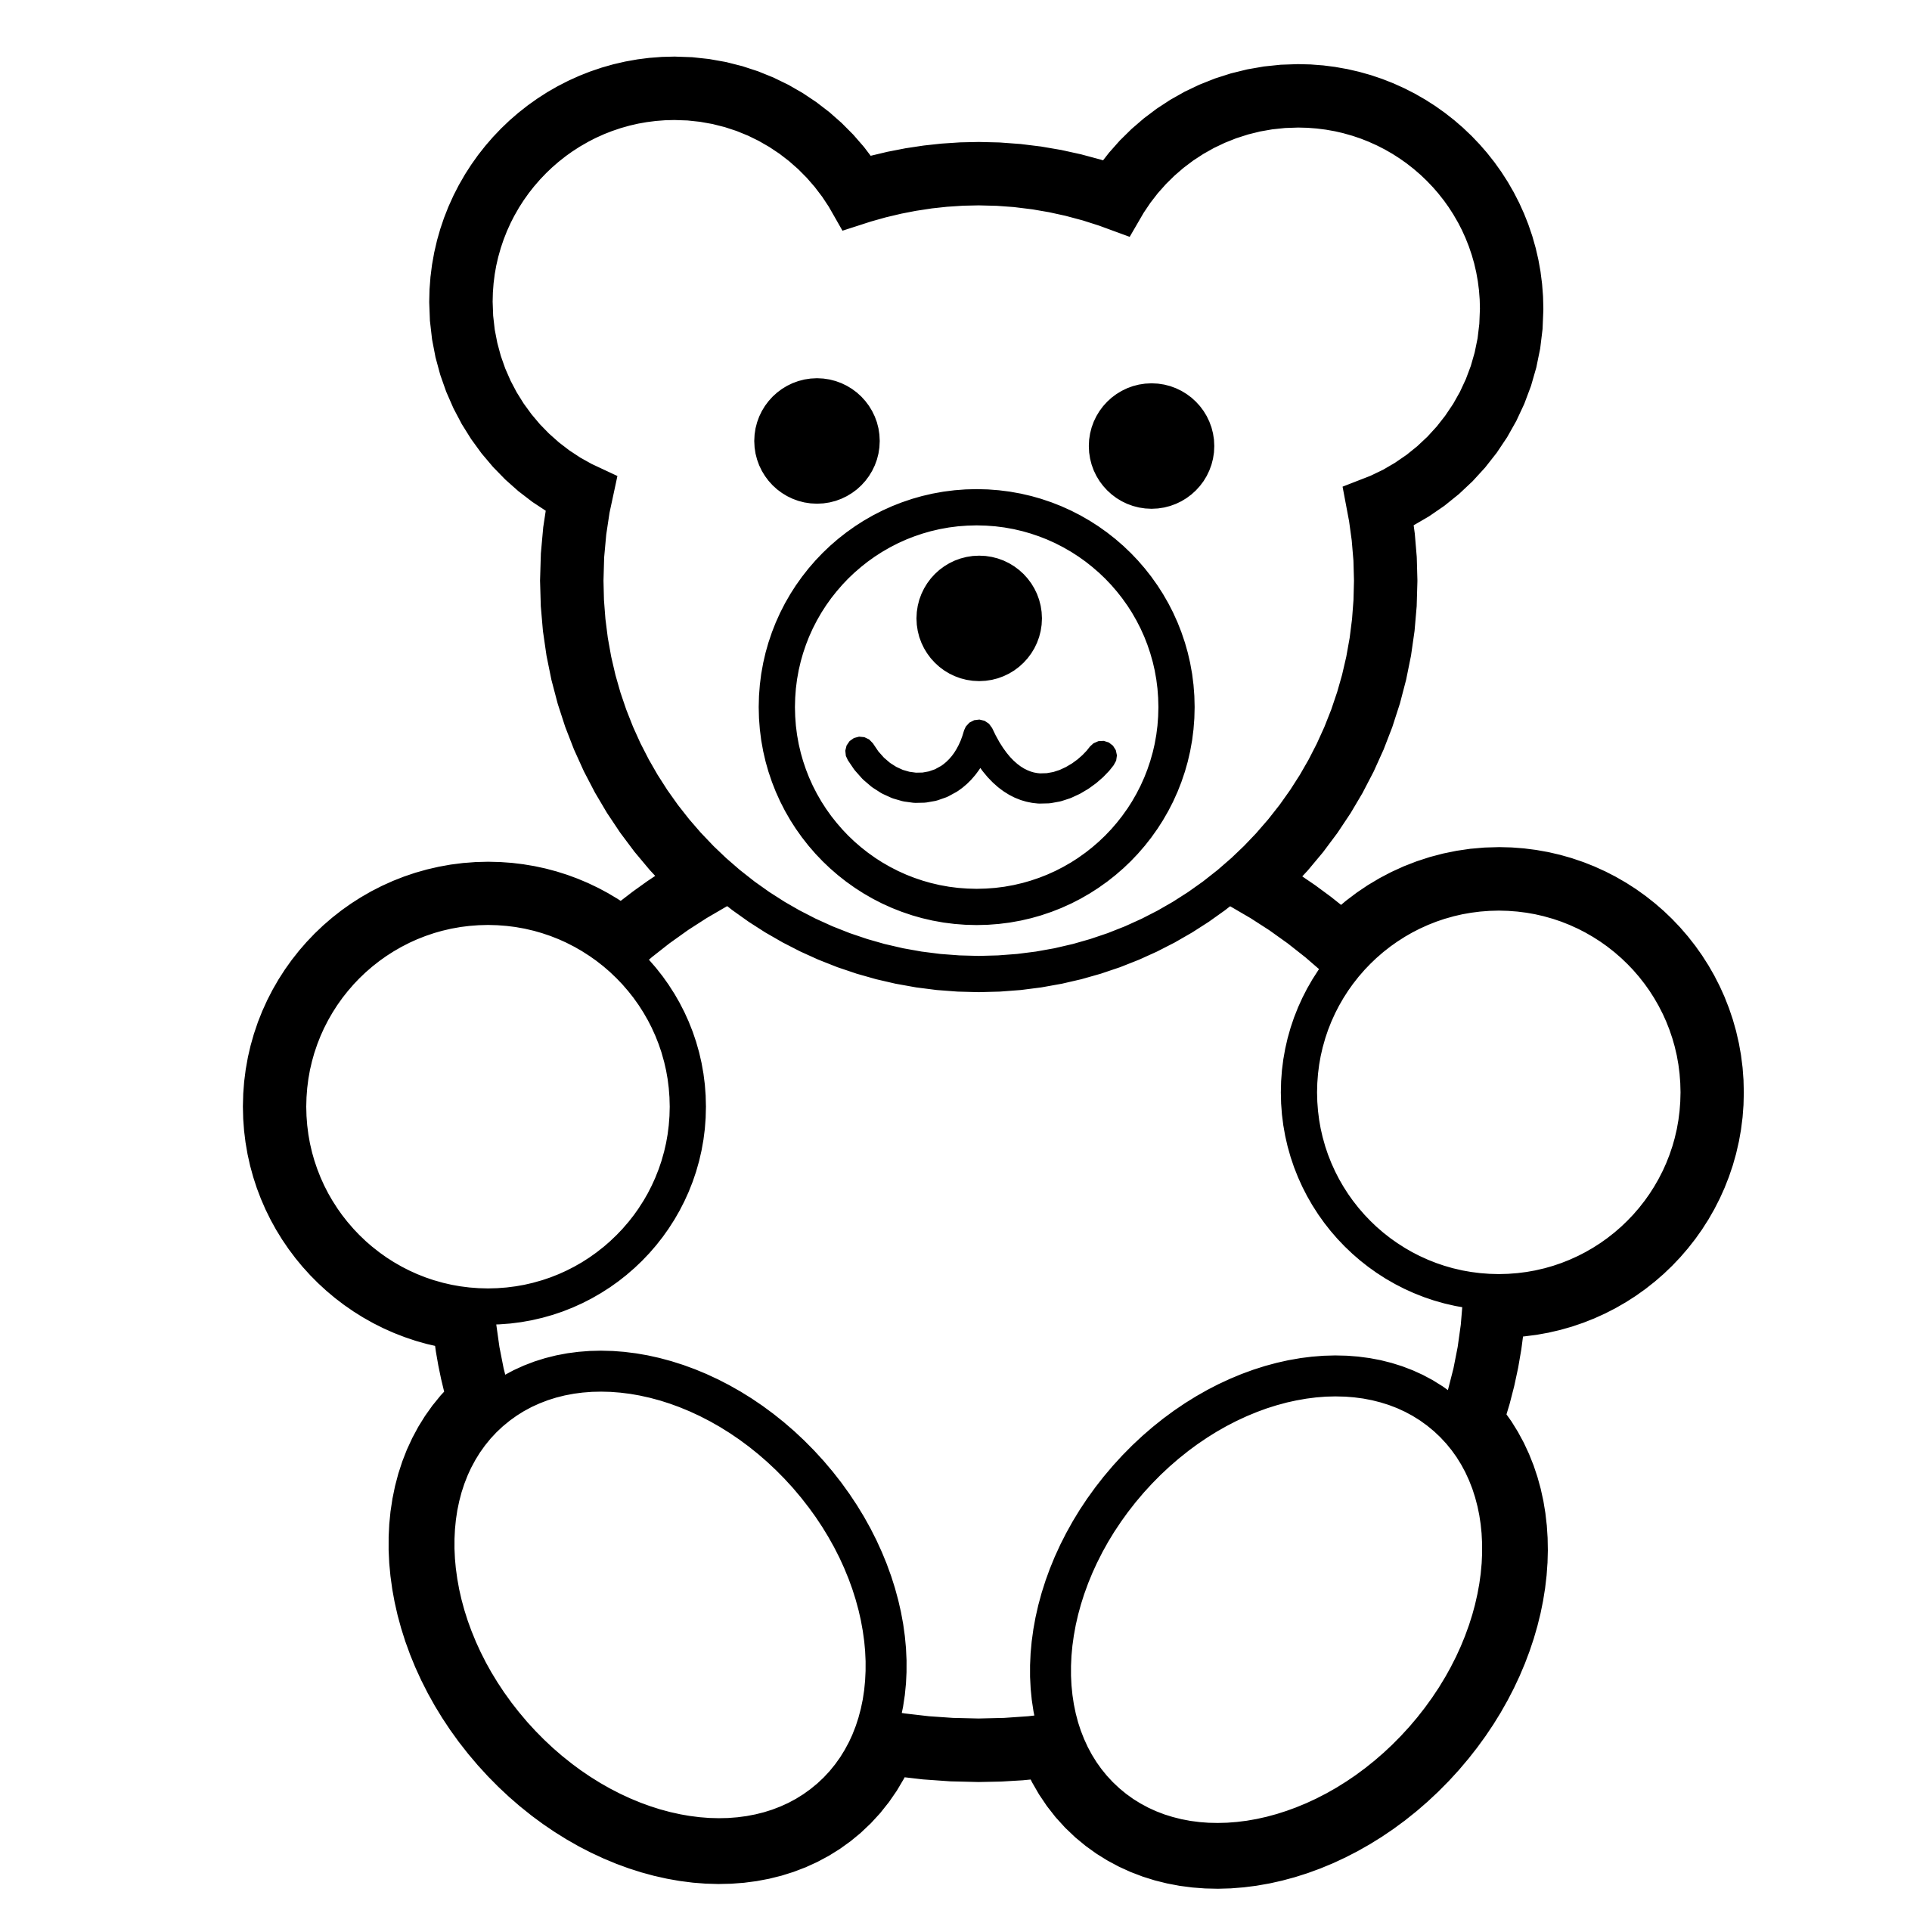 Teddy Bear Outline Clipart.